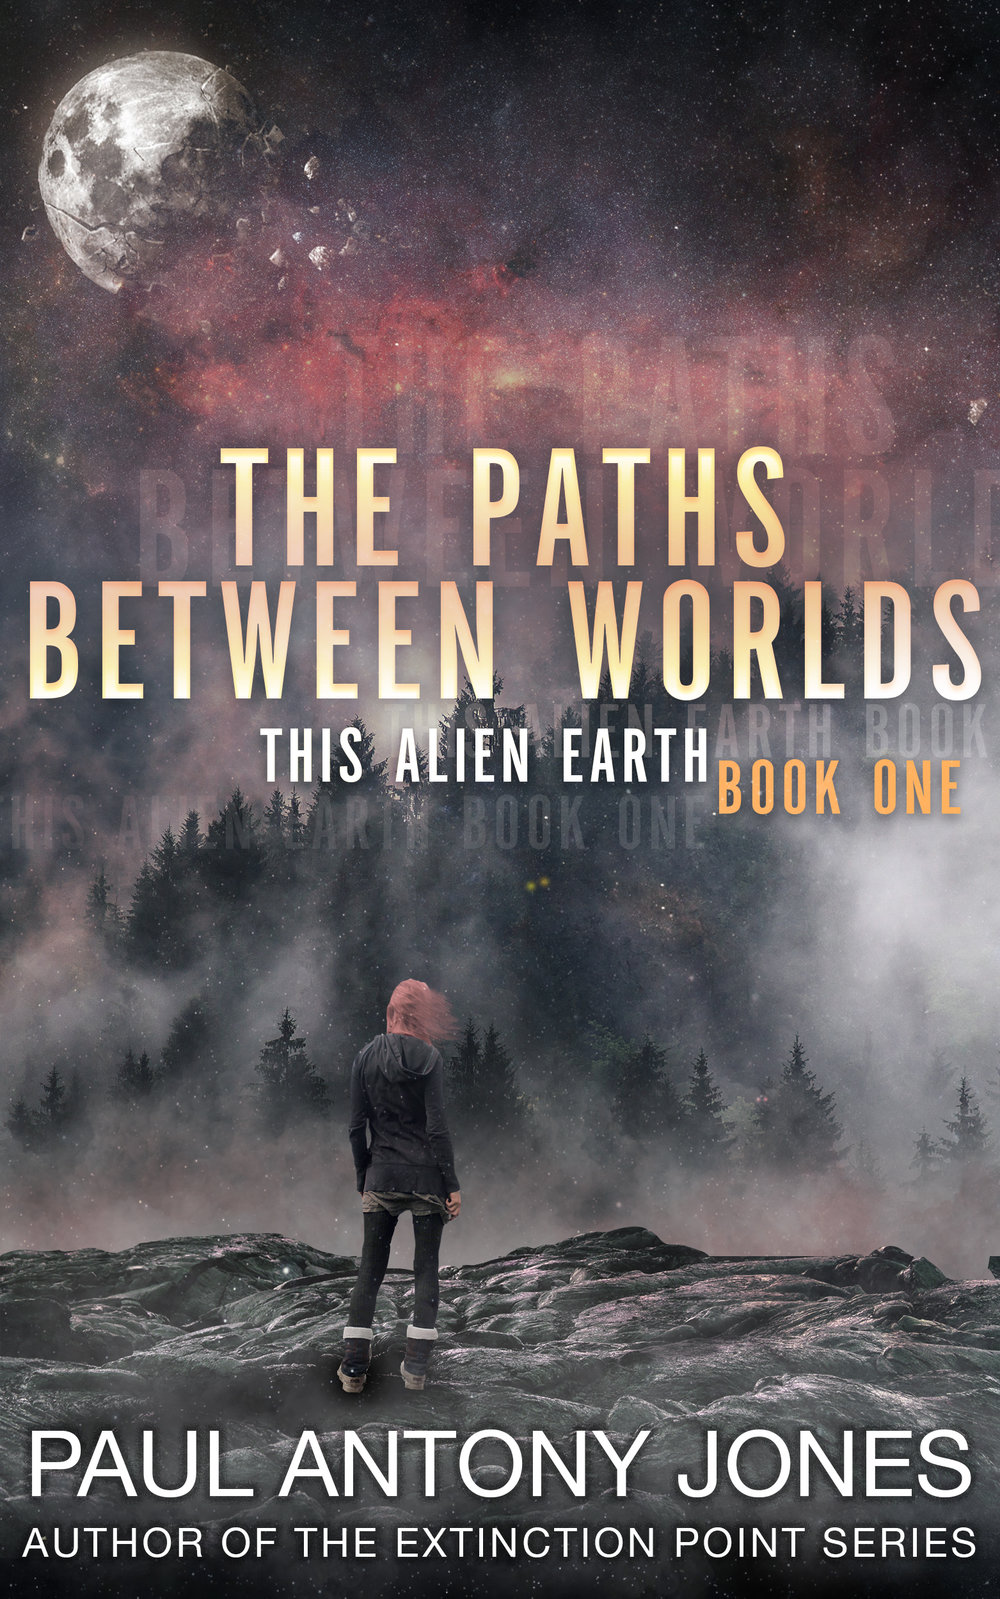 COMING SOON The Paths Between Worlds   This Alien Earth Book 1  Paul Antony Jones